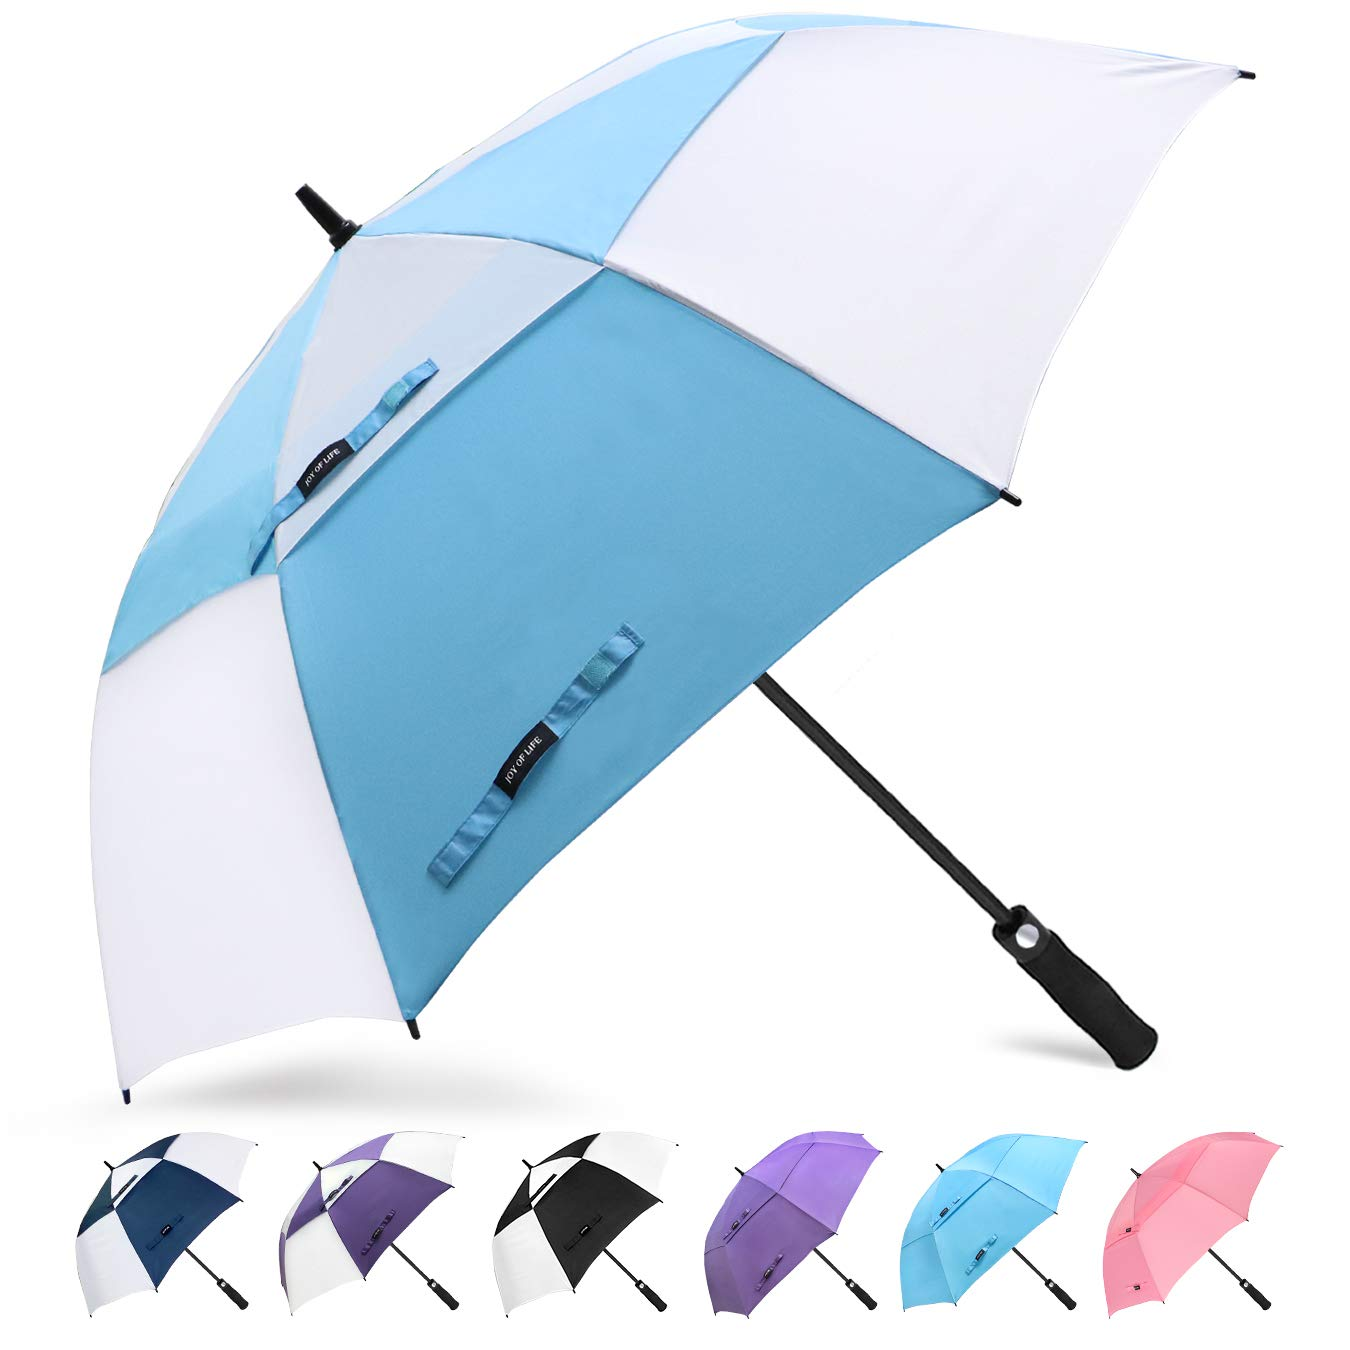 ZOMAKE Golf Umbrella 68 Inch, Large Windproof Umbrellas Automatic Open Oversize Rain Umbrella with Double Canopy for Men - Vented Stick Umbrellas by ZOMAKE